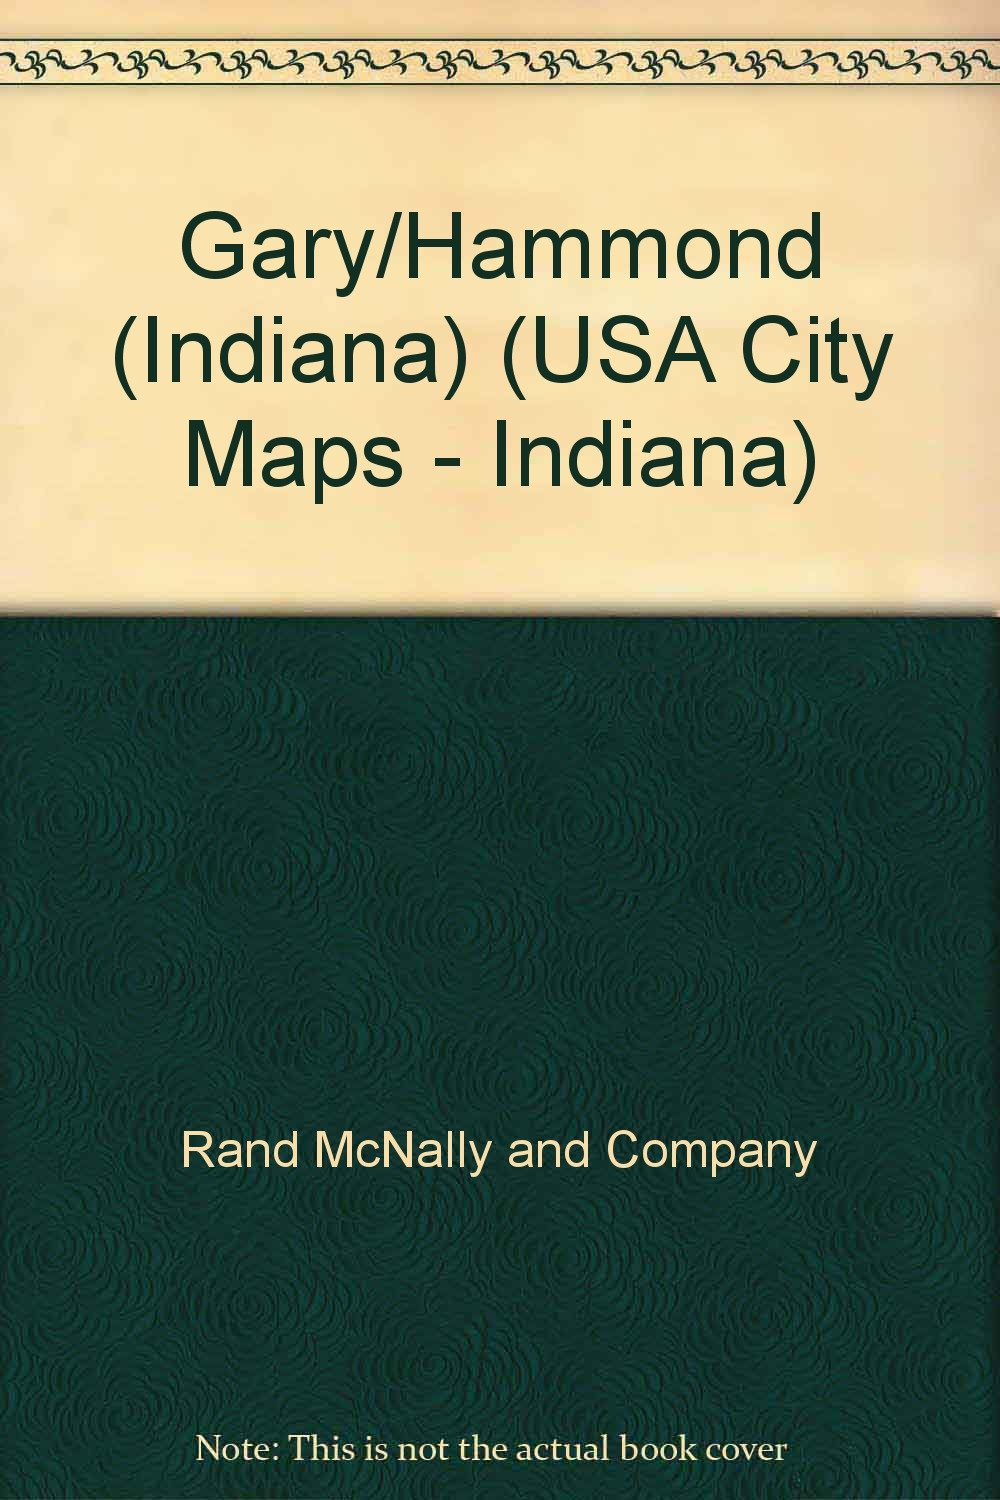 lost towns in indiana, sweet home indiana, america indiana, google maps indiana, three regions of indiana, maps for indiana, capital of indiana, lakes in northern indiana, illinois state line indiana, evansville indiana, states around indiana, usa maps with cities only, state of indiana, sports in indiana, major products in indiana, usa and mexico, lowest point in indiana, big cities in indiana, indianapolis indiana, location of us in indiana, on indiana map usa